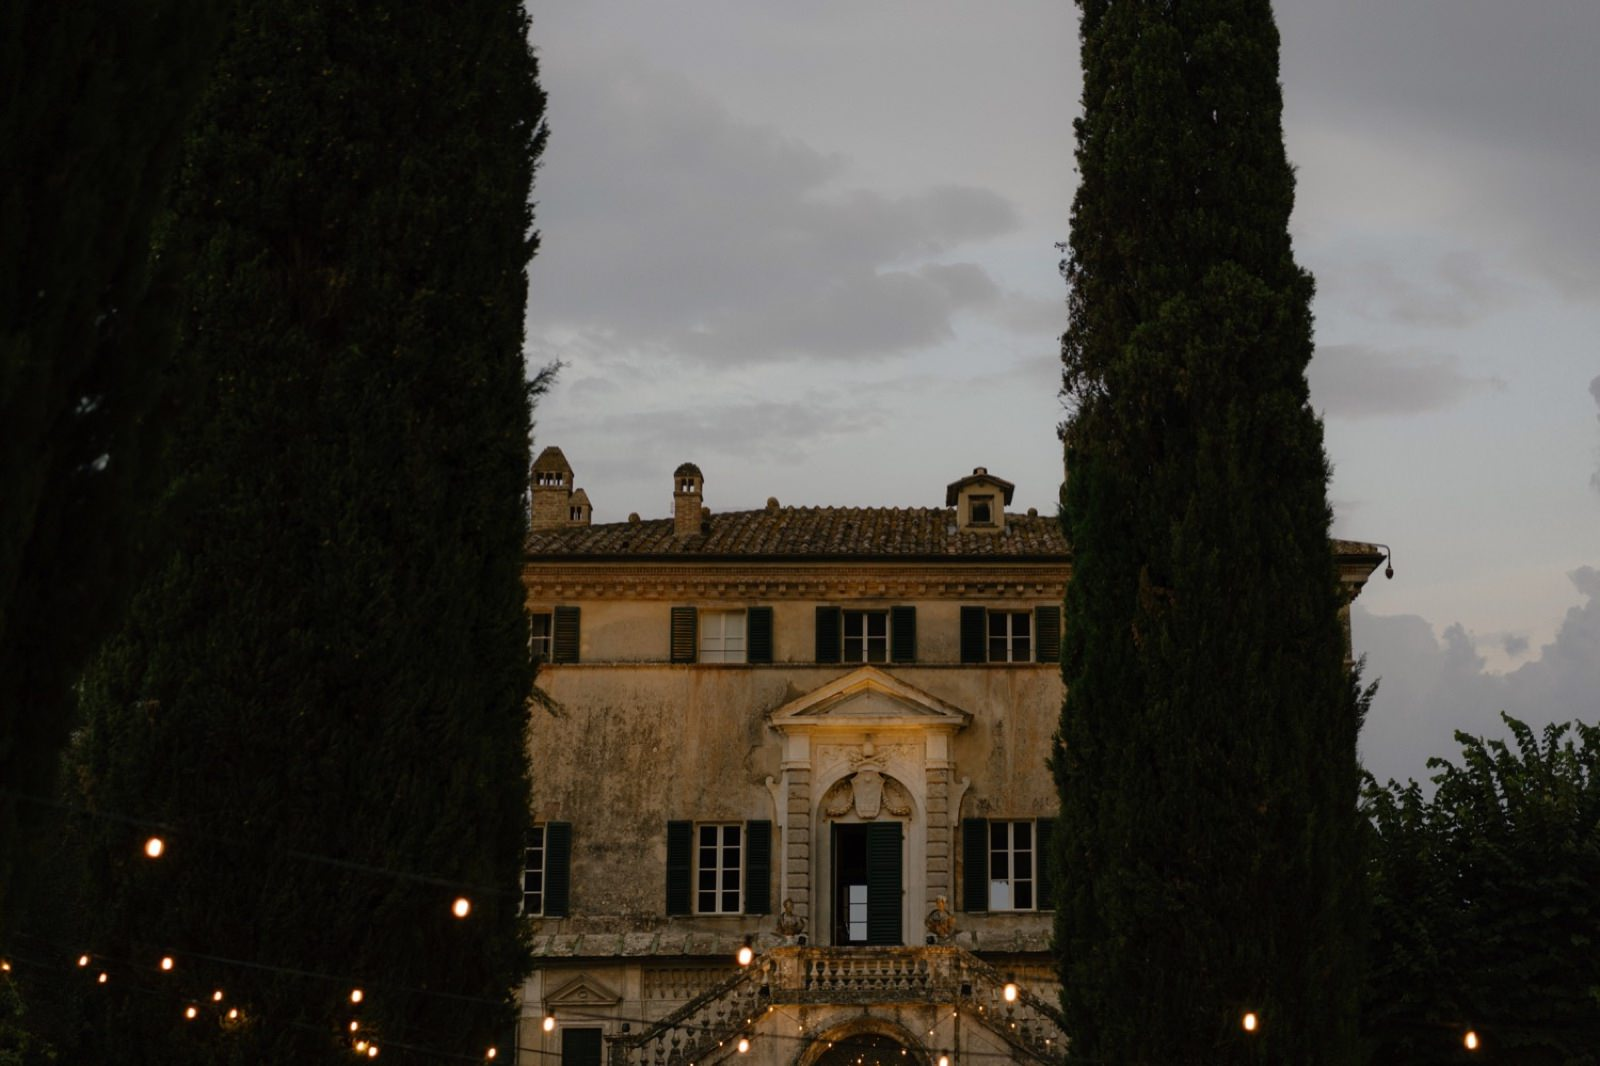 Villa Cetinale at sunset